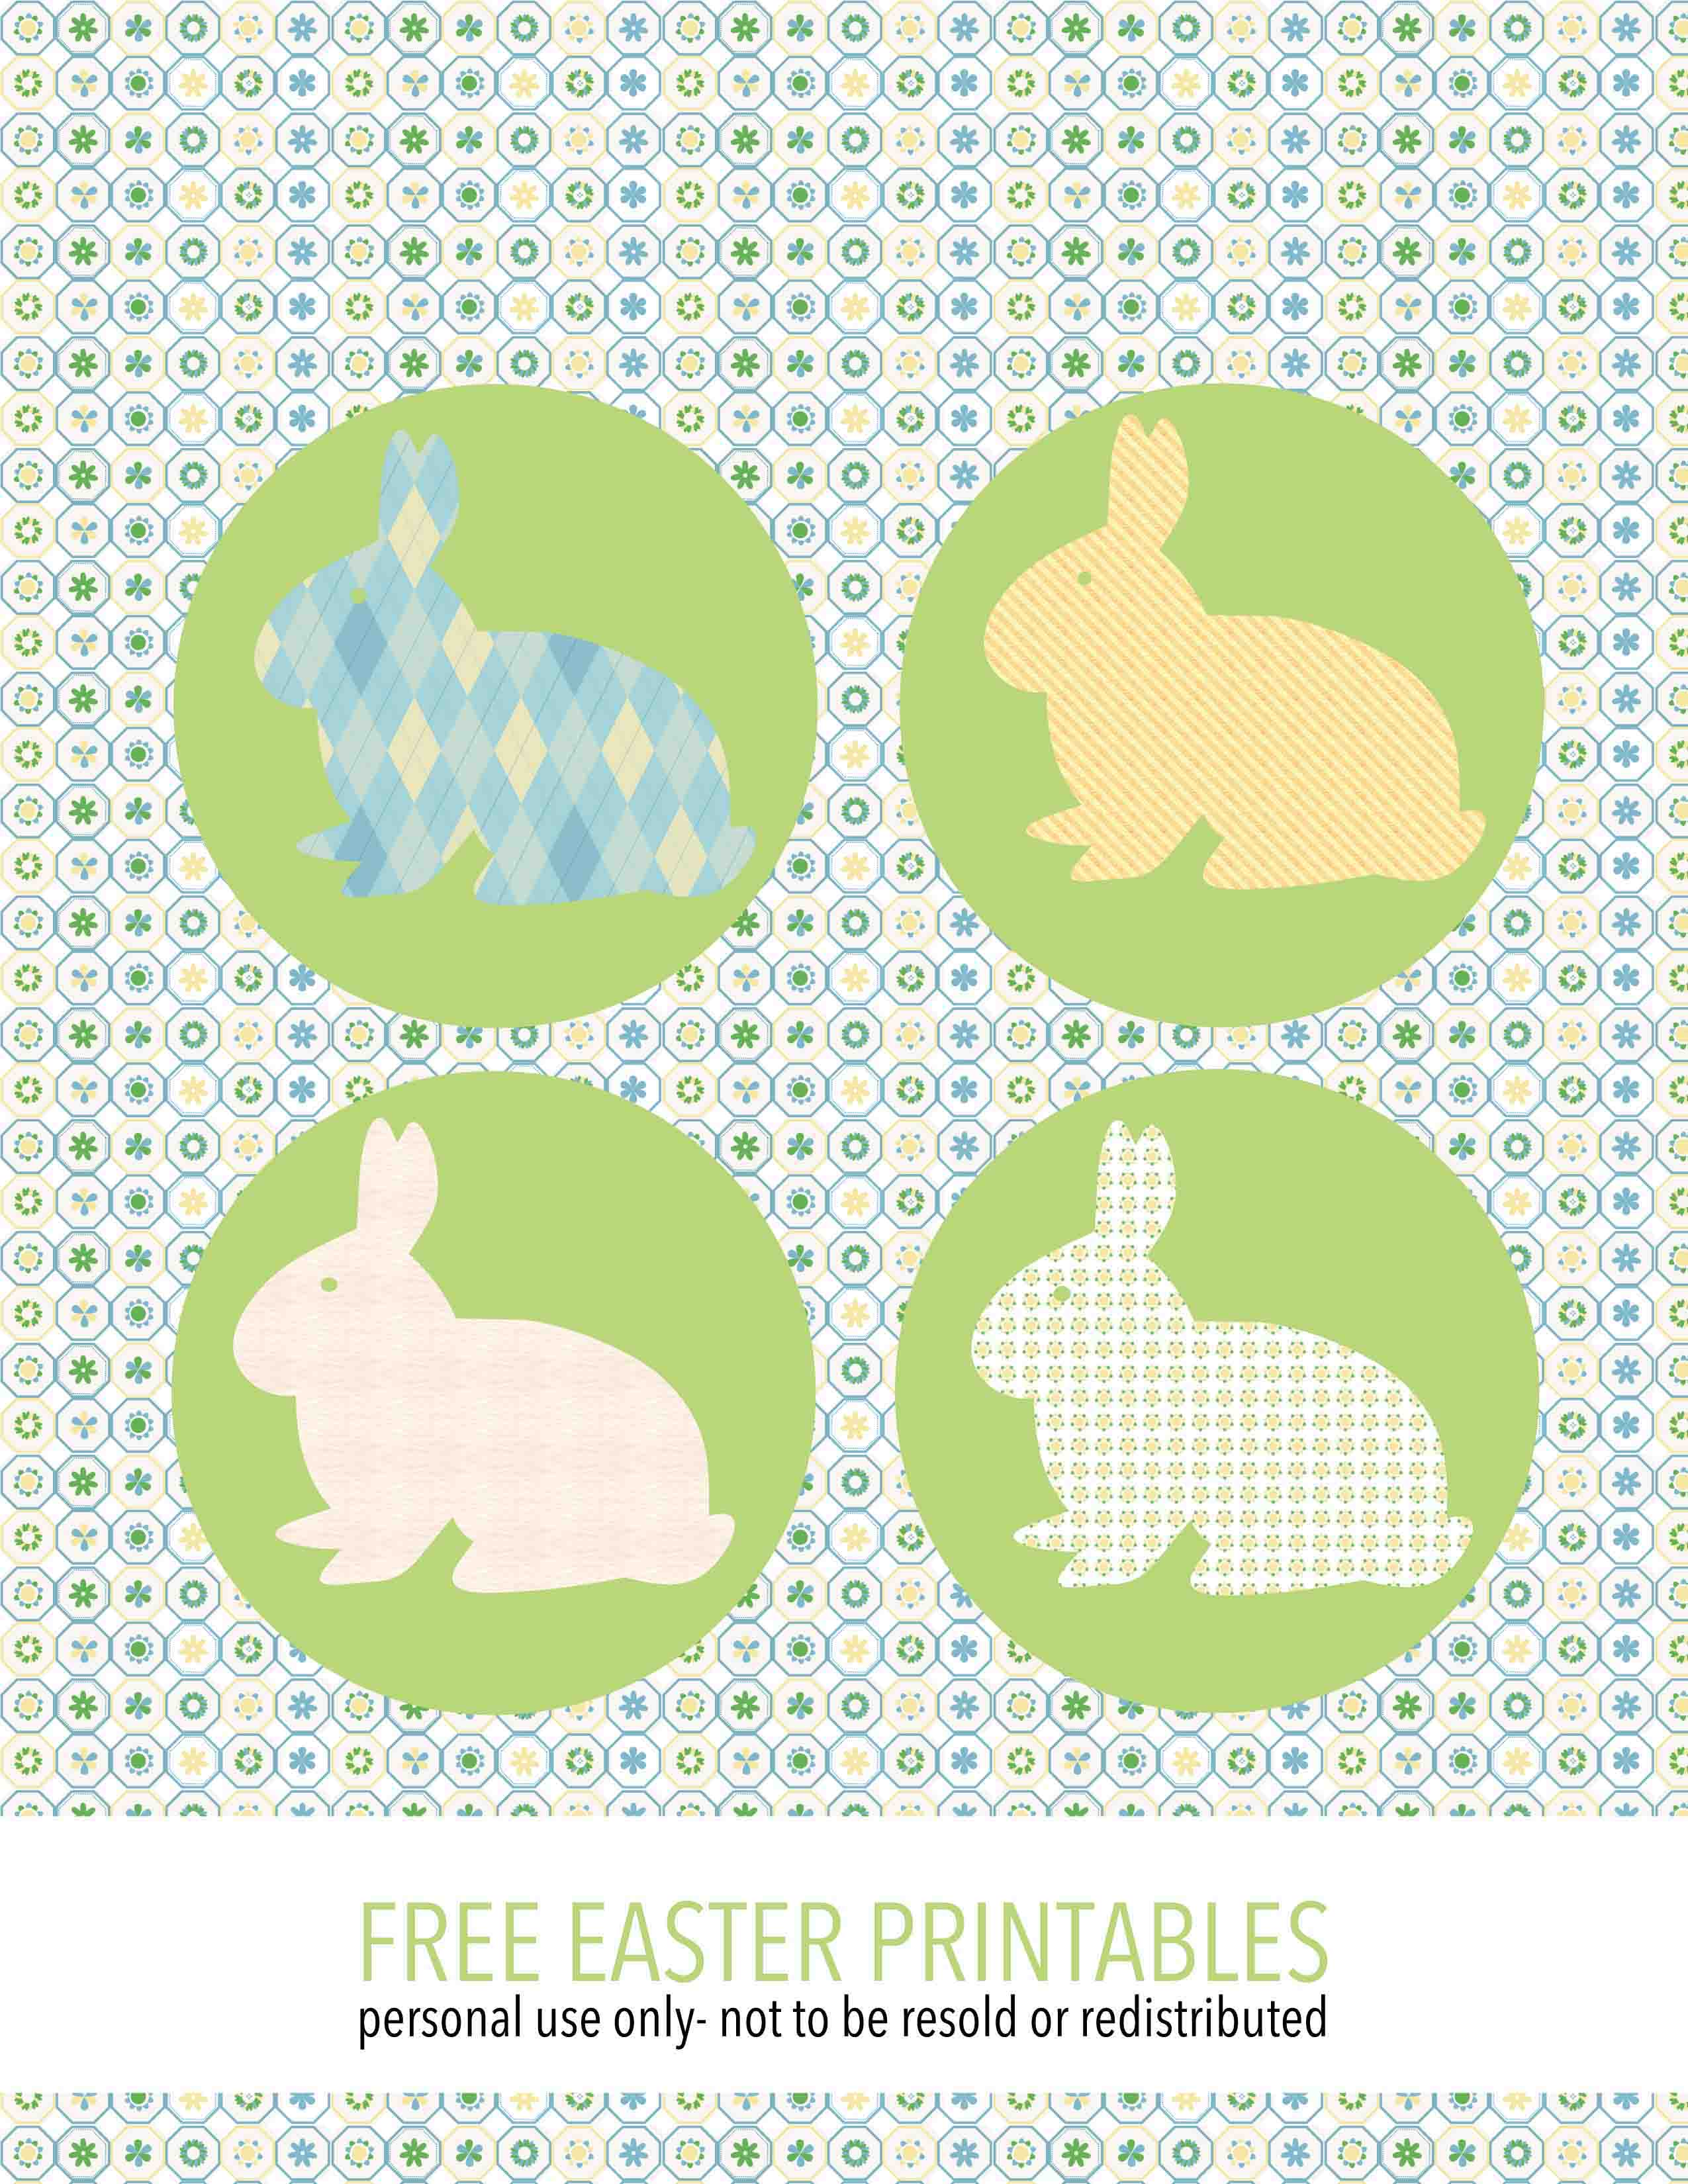 Party Simplicity Free Easter Printables Kids Coloring Pages and More E3P8Jh6h